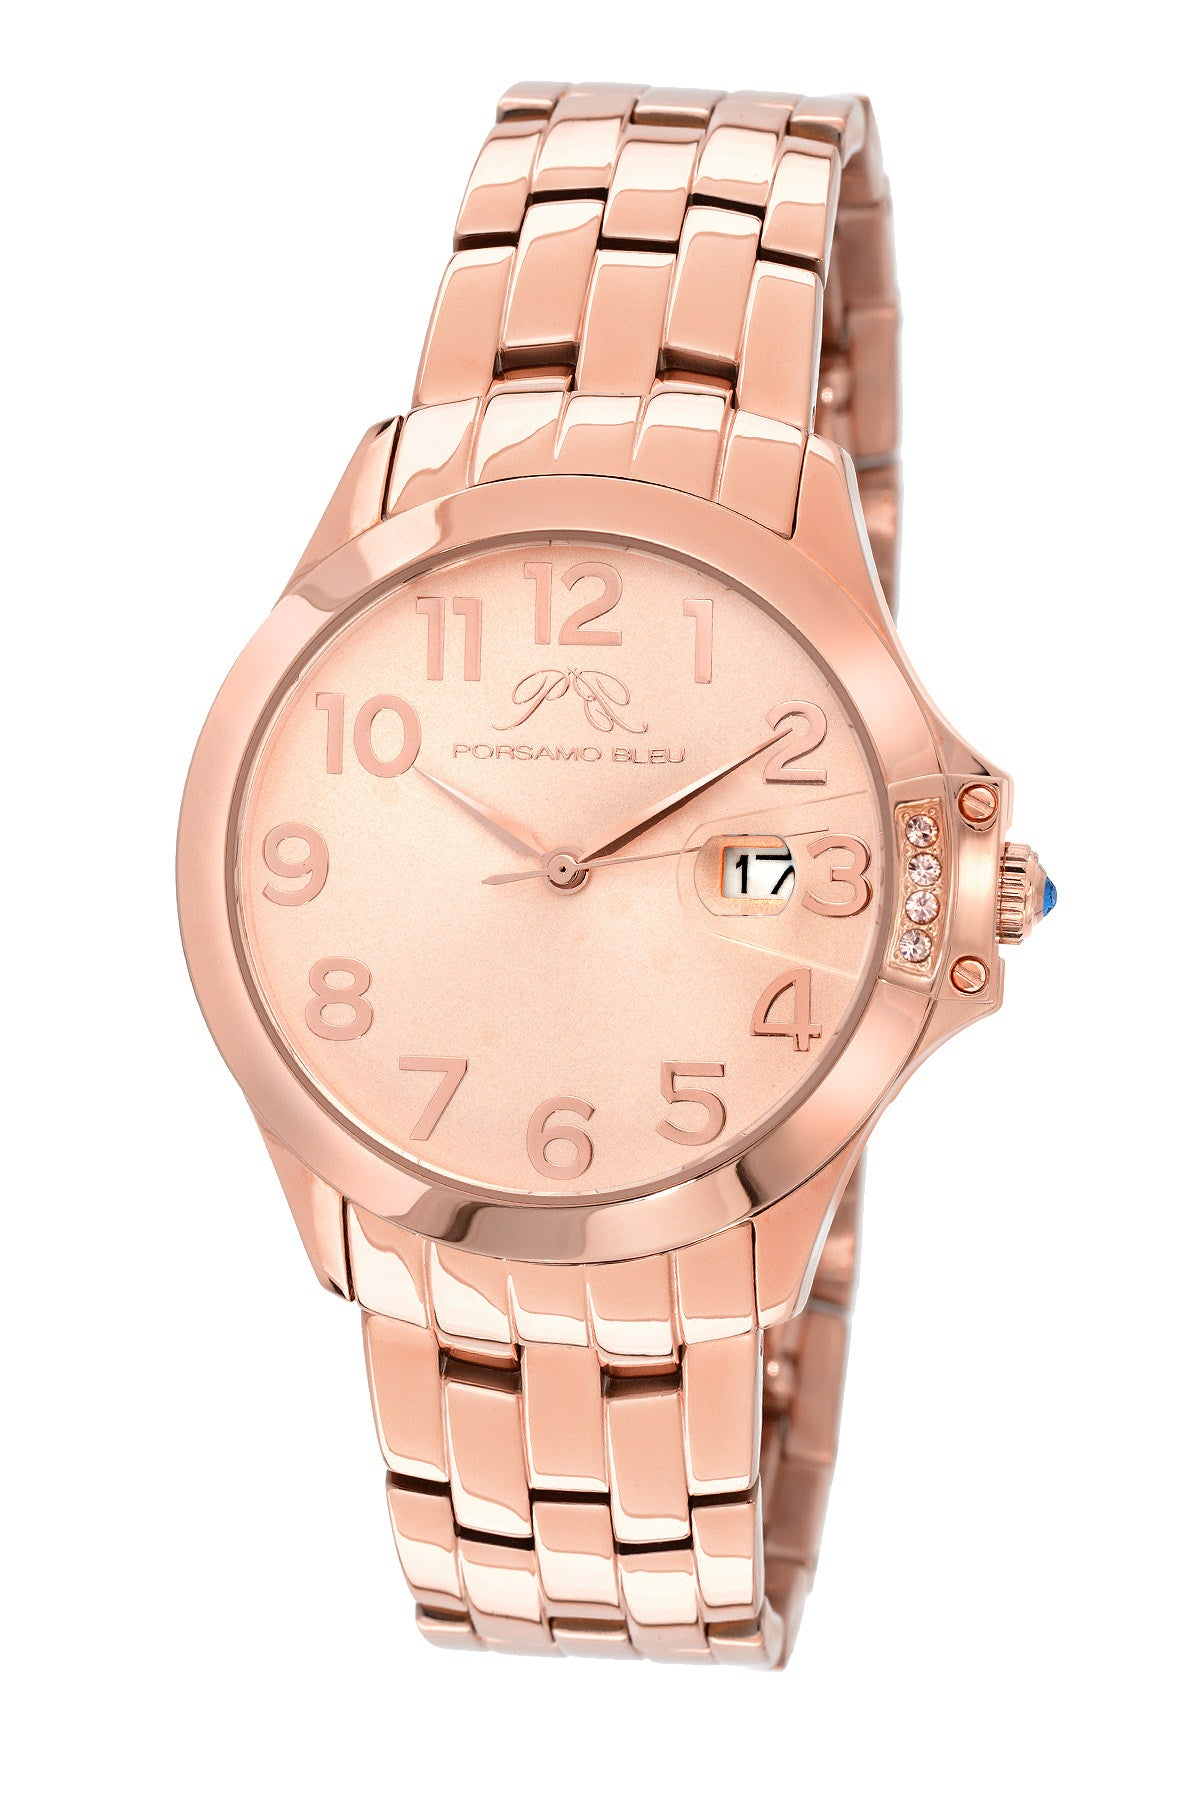 Porsamo Bleu Olivia luxury women's stainless steel watch, rose 981COLS